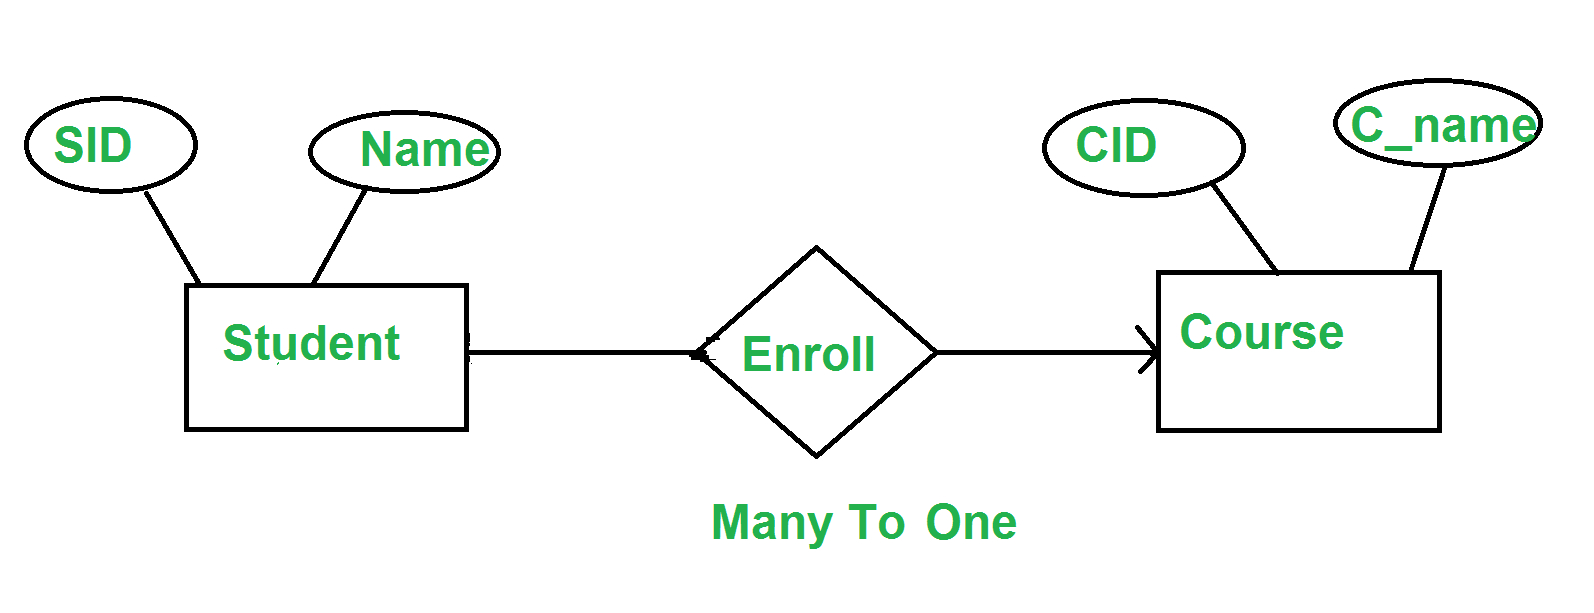 Minimization Of Er Diagrams - Geeksforgeeks regarding Entity Relationship Diagram One To Many